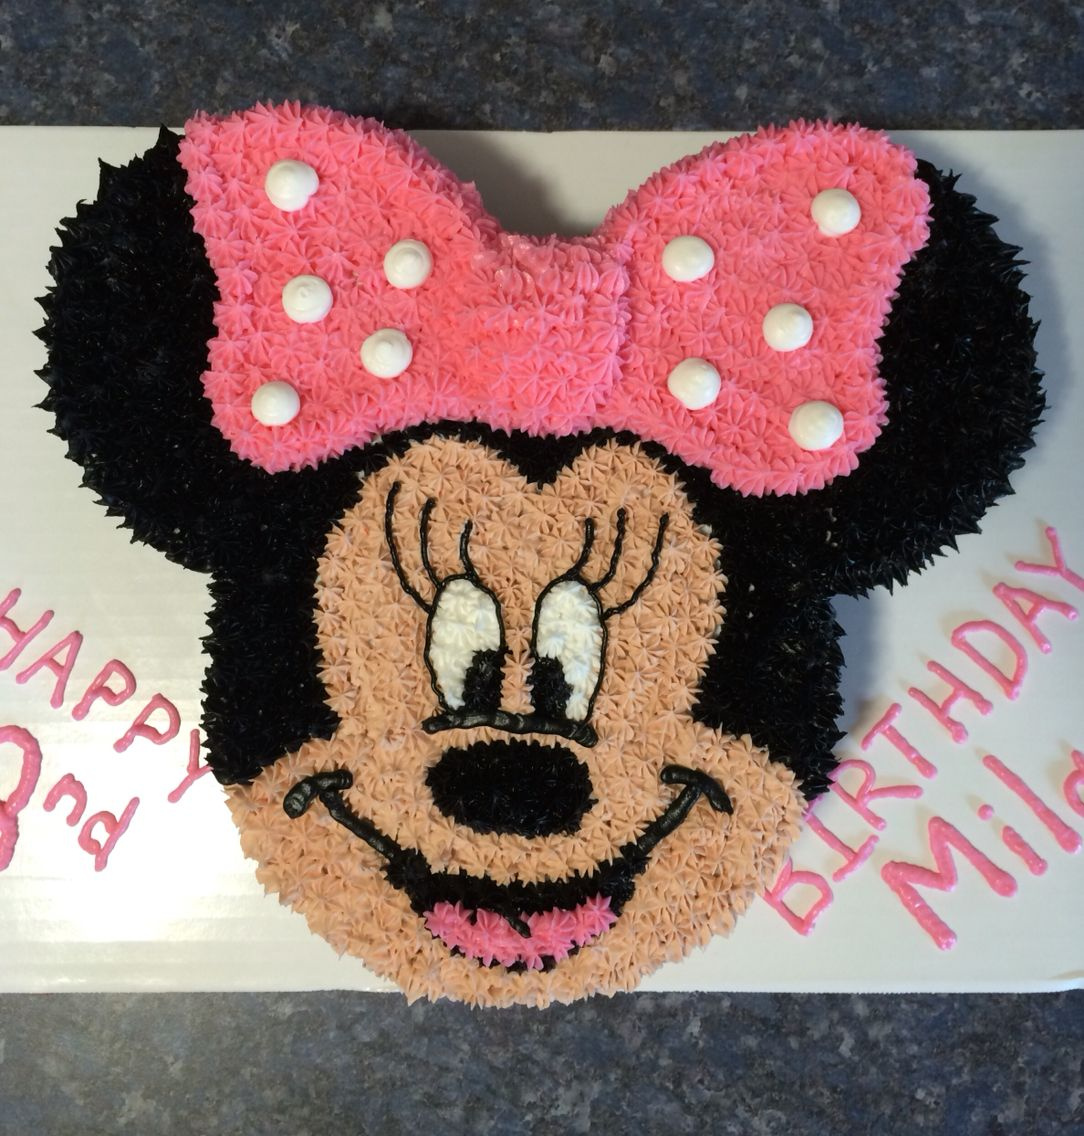 Fantastic Minnie Mouse Cake Using 1 8 Round Pan And 2 6 Round Pans 6 12 Funny Birthday Cards Online Barepcheapnameinfo